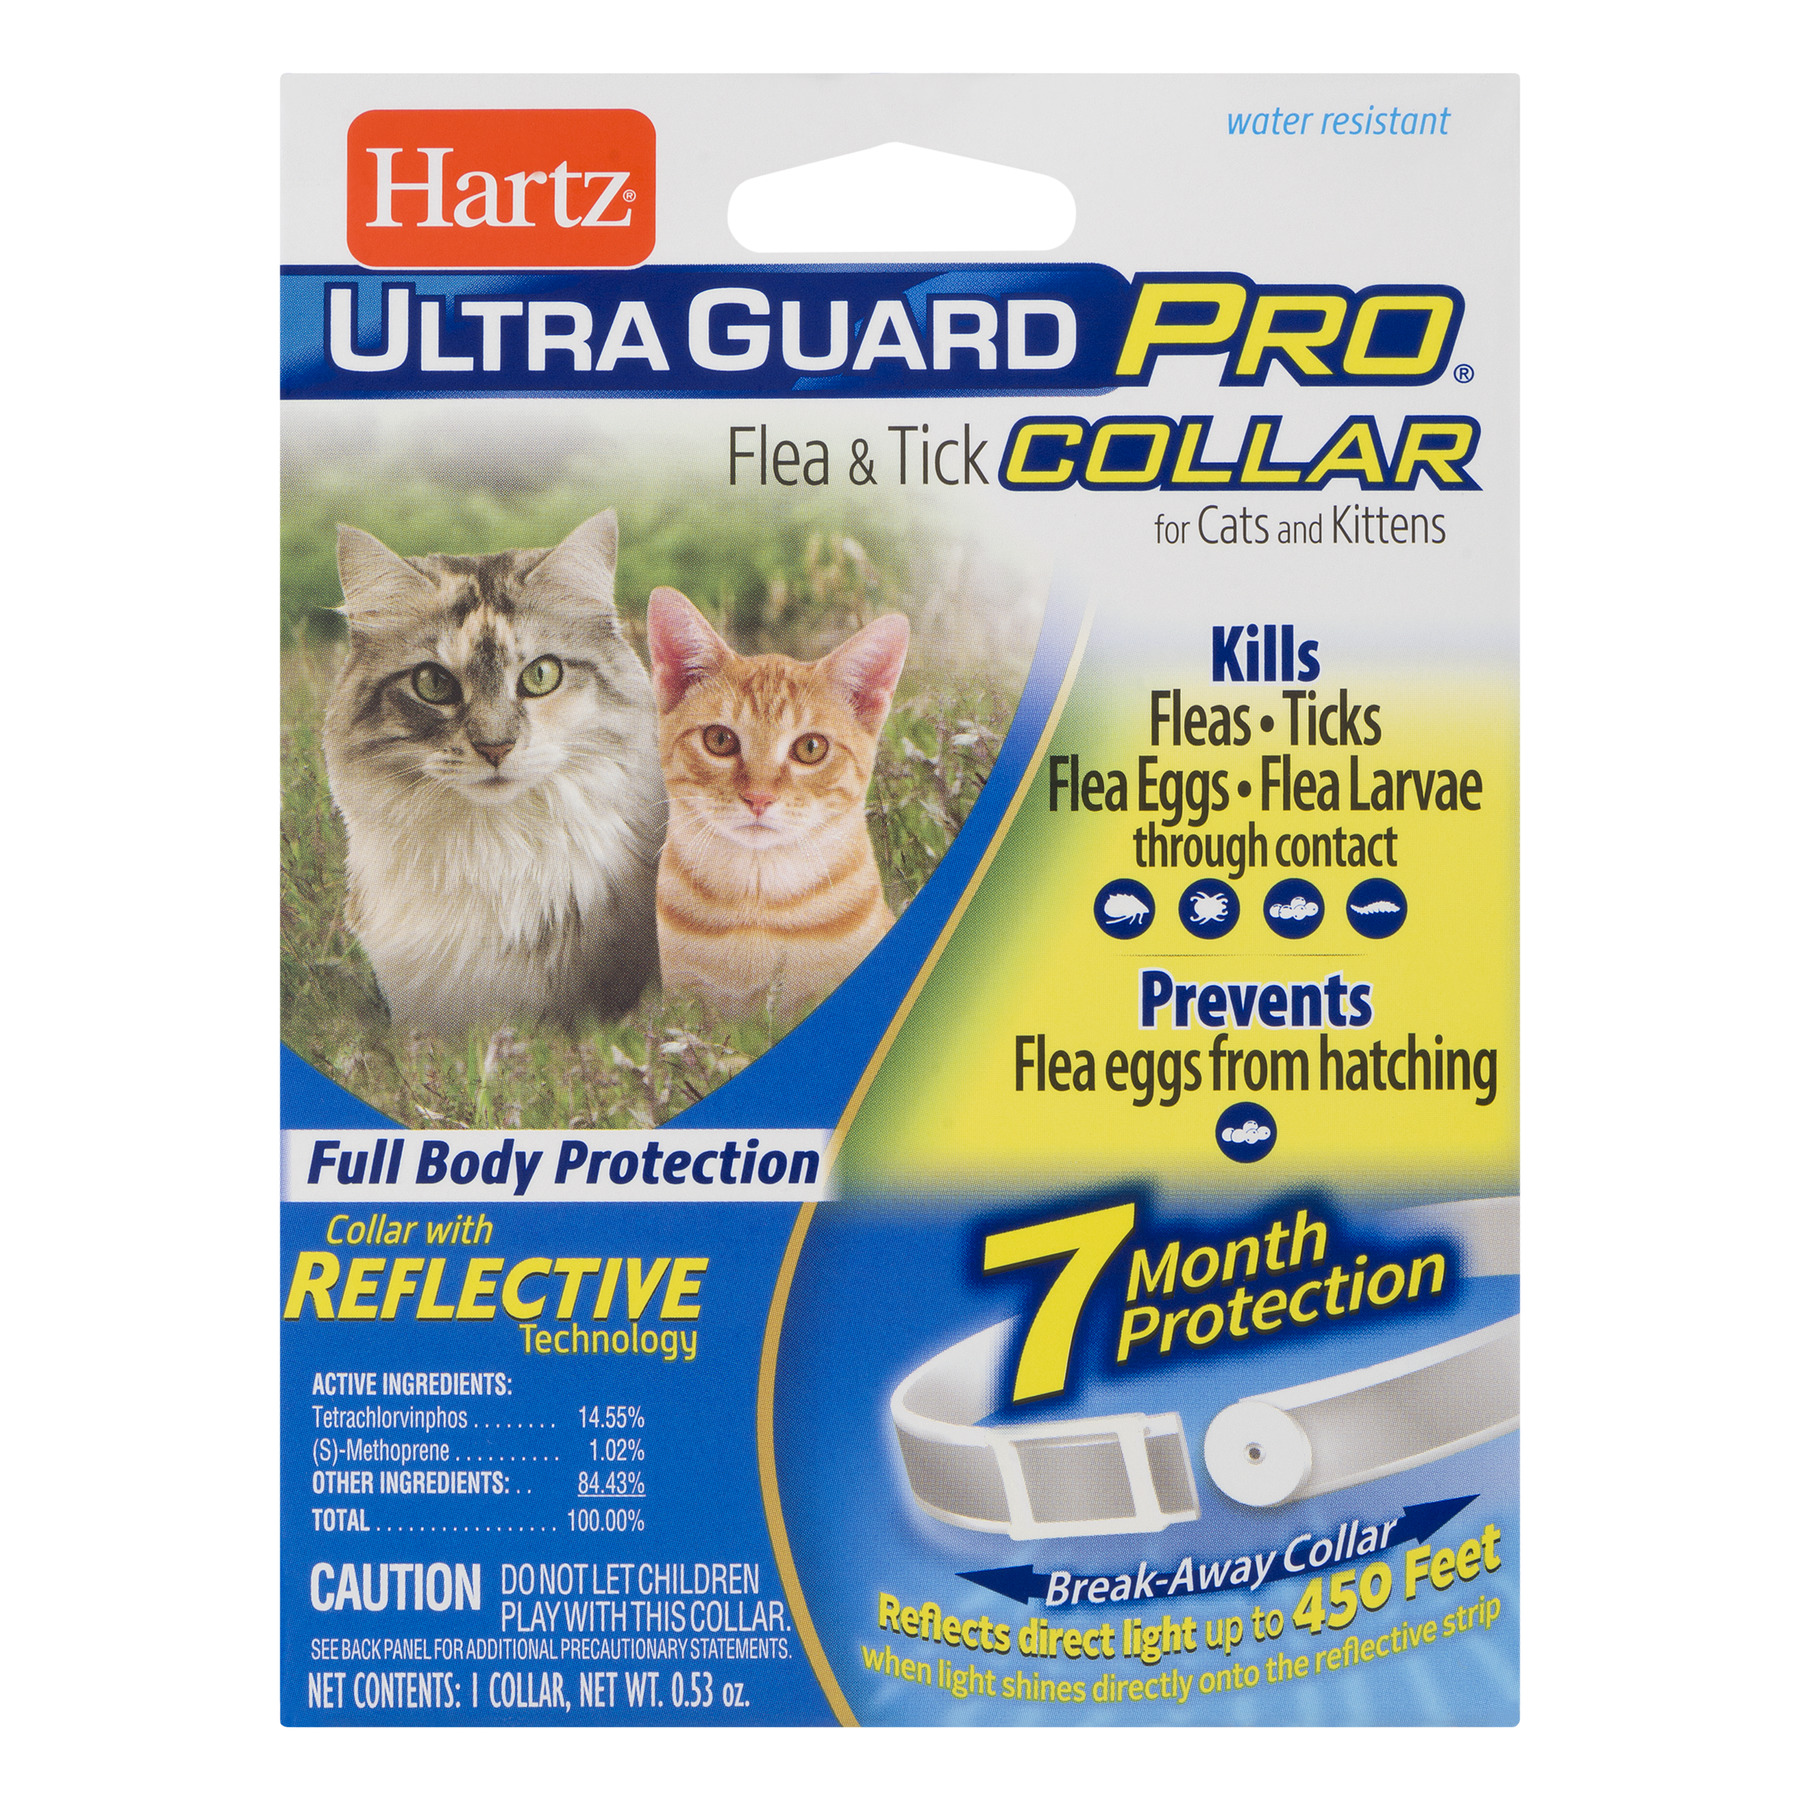 Hartz Ultra Guard Pro Flea & Tick Collar, 0.53 OZ